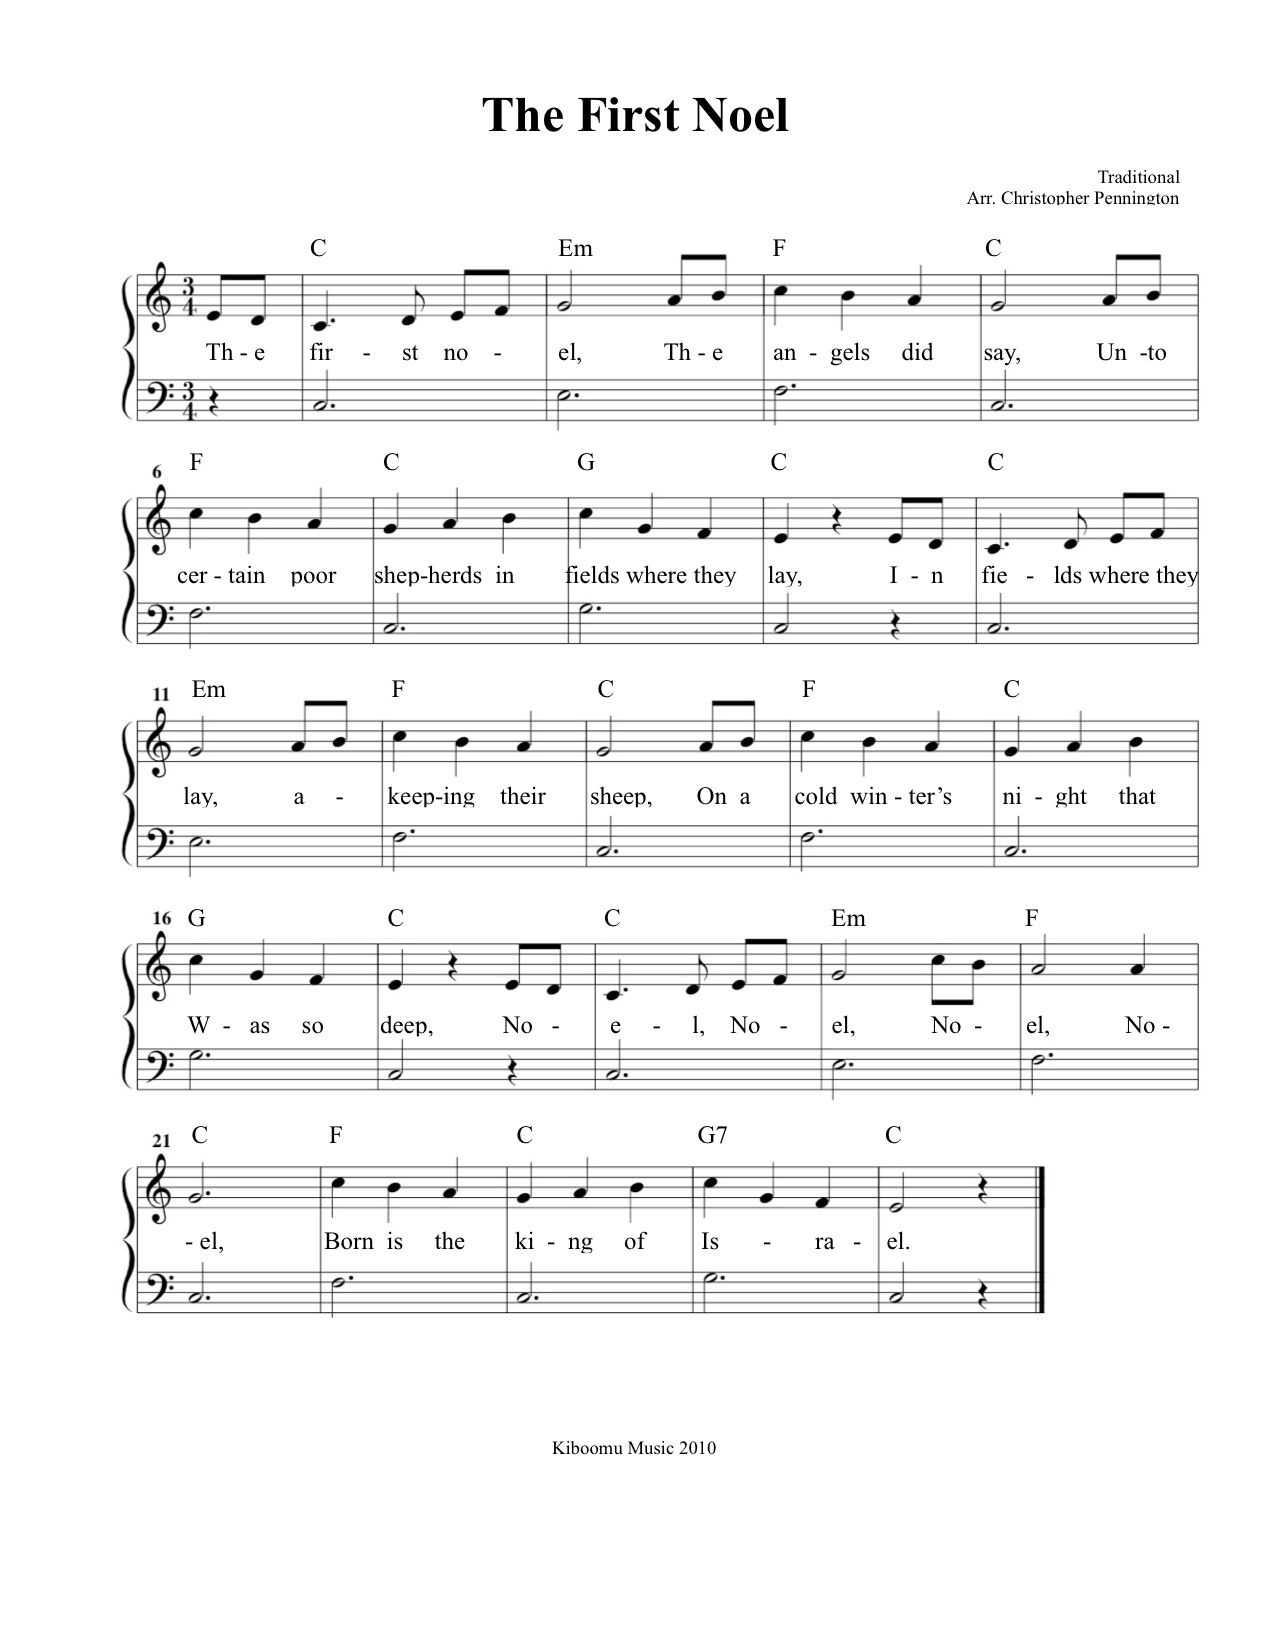 The First Noel Sheet Music from Kiboomu Kids Songs